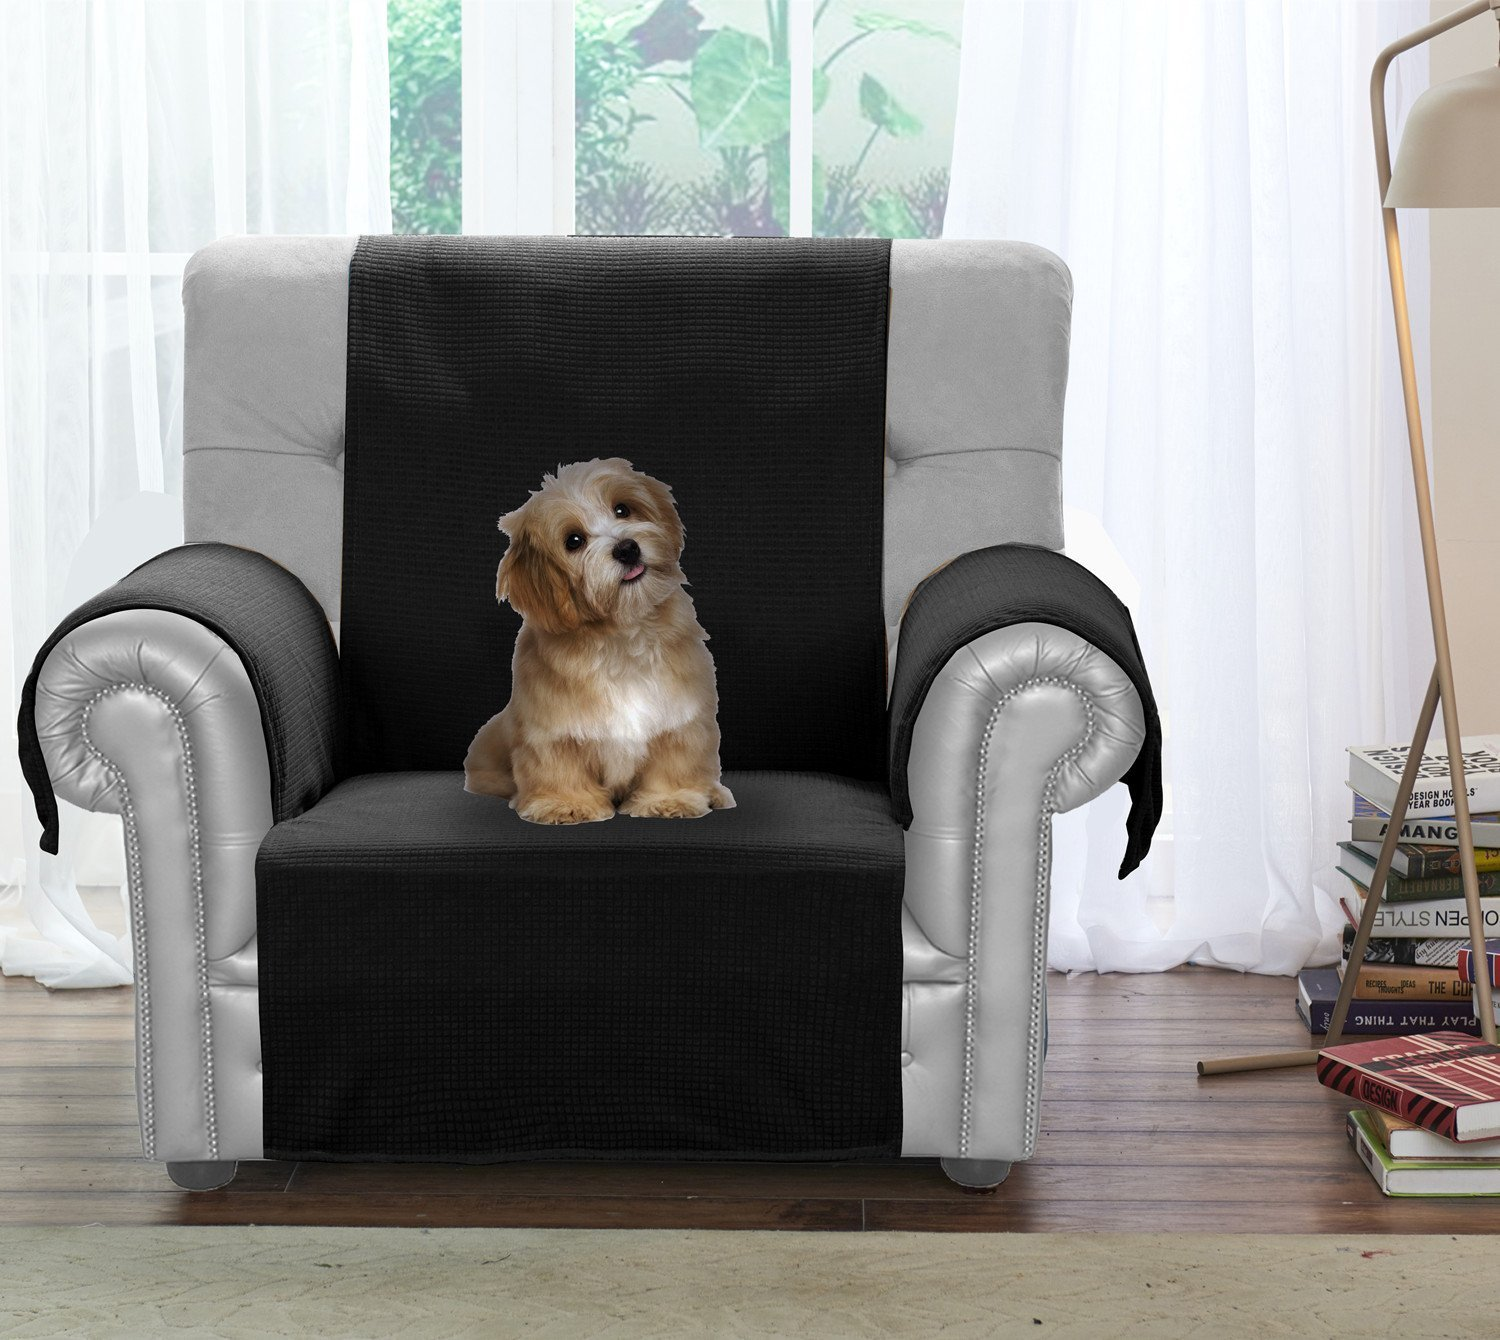 Miraculous Jiater Improved Non Slip Pet Dog Sofa Chair Slipcovers Living Room Couch Covers Furniture Protectors Black Chair Spiritservingveterans Wood Chair Design Ideas Spiritservingveteransorg